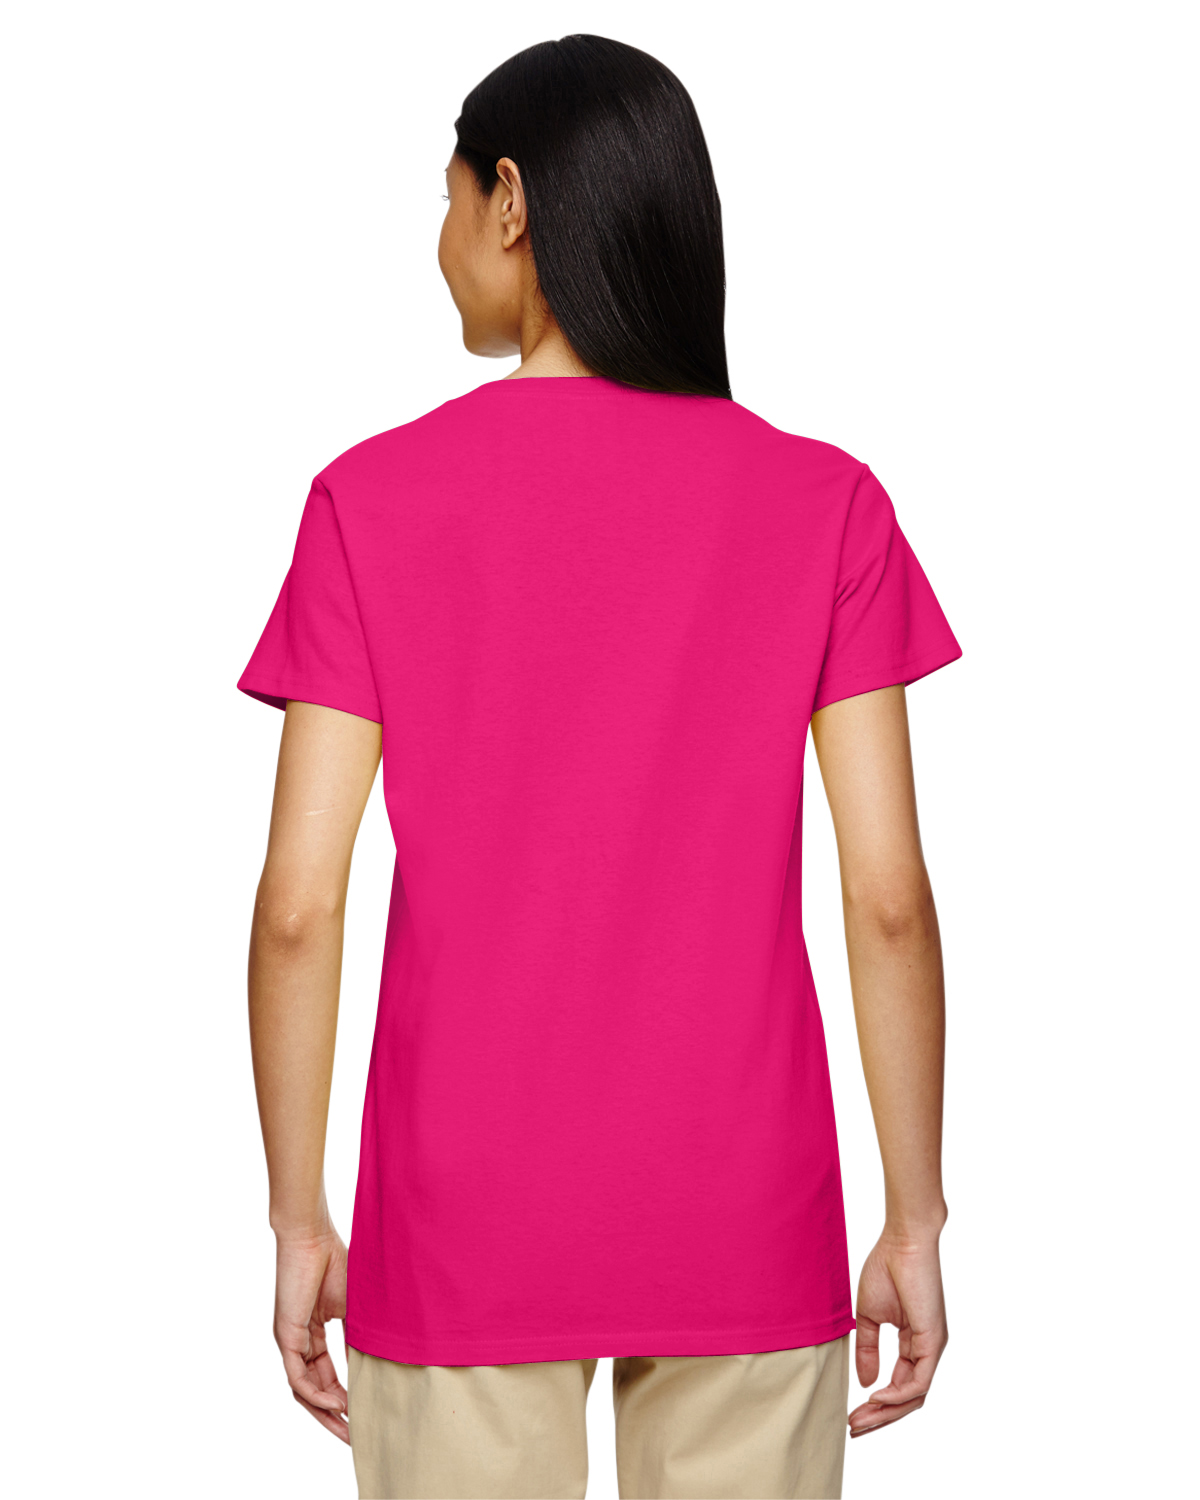 NEW Gildan Women's Heavy Cotton Short Sleeves Ladies V-Neck T ...